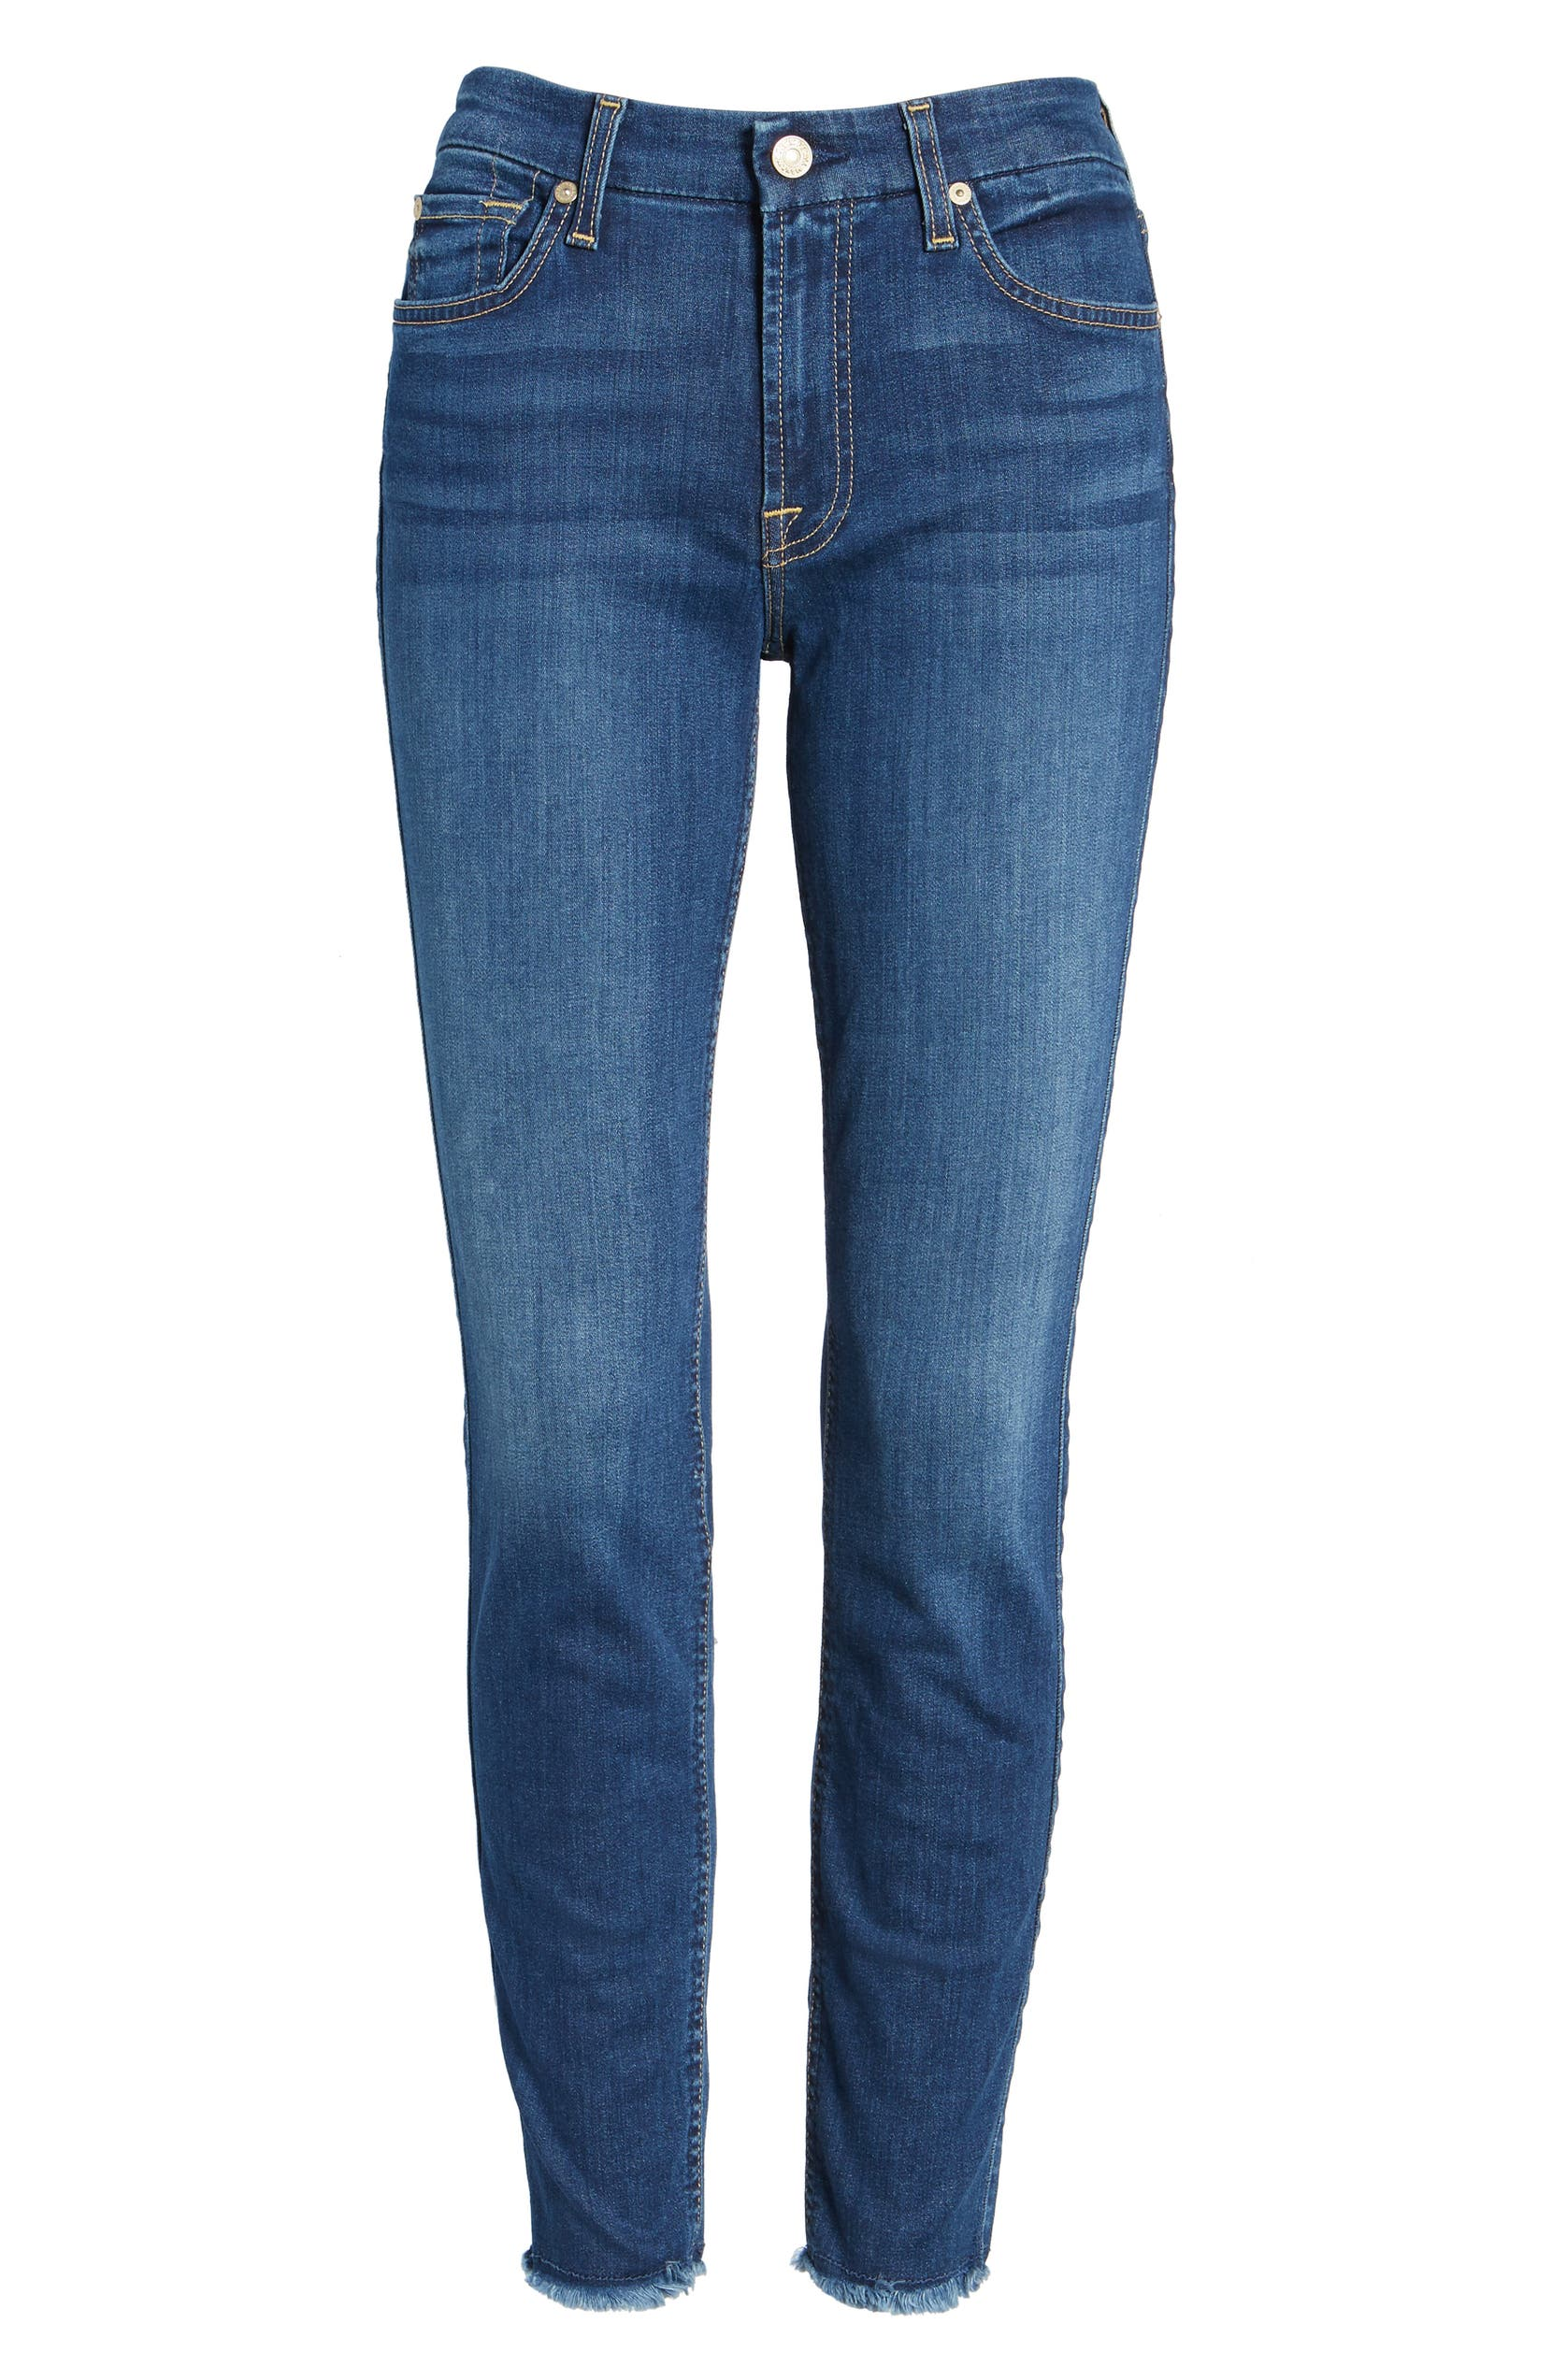 e2ebfc0ecb 7 For All Mankind® b(air) Raw Hem Ankle Skinny Jeans (Reign)   Nordstrom